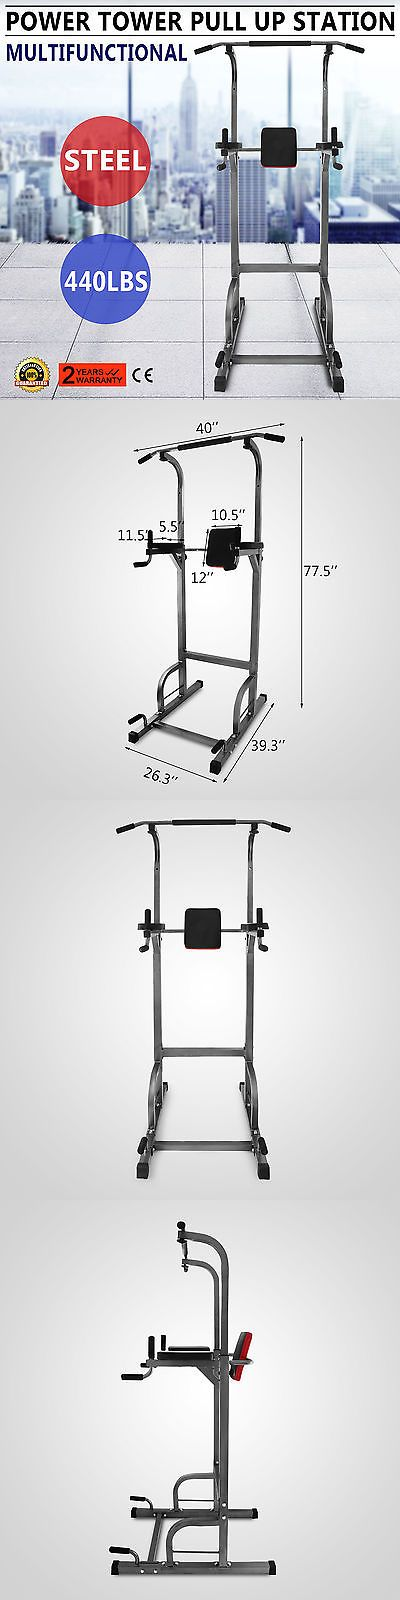 Push Up Stands 158925: Power Tower 770Lb Height Adjustable Station Push Up Workout Strength Sit Up -> BUY IT NOW ONLY: $129.62 on eBay!